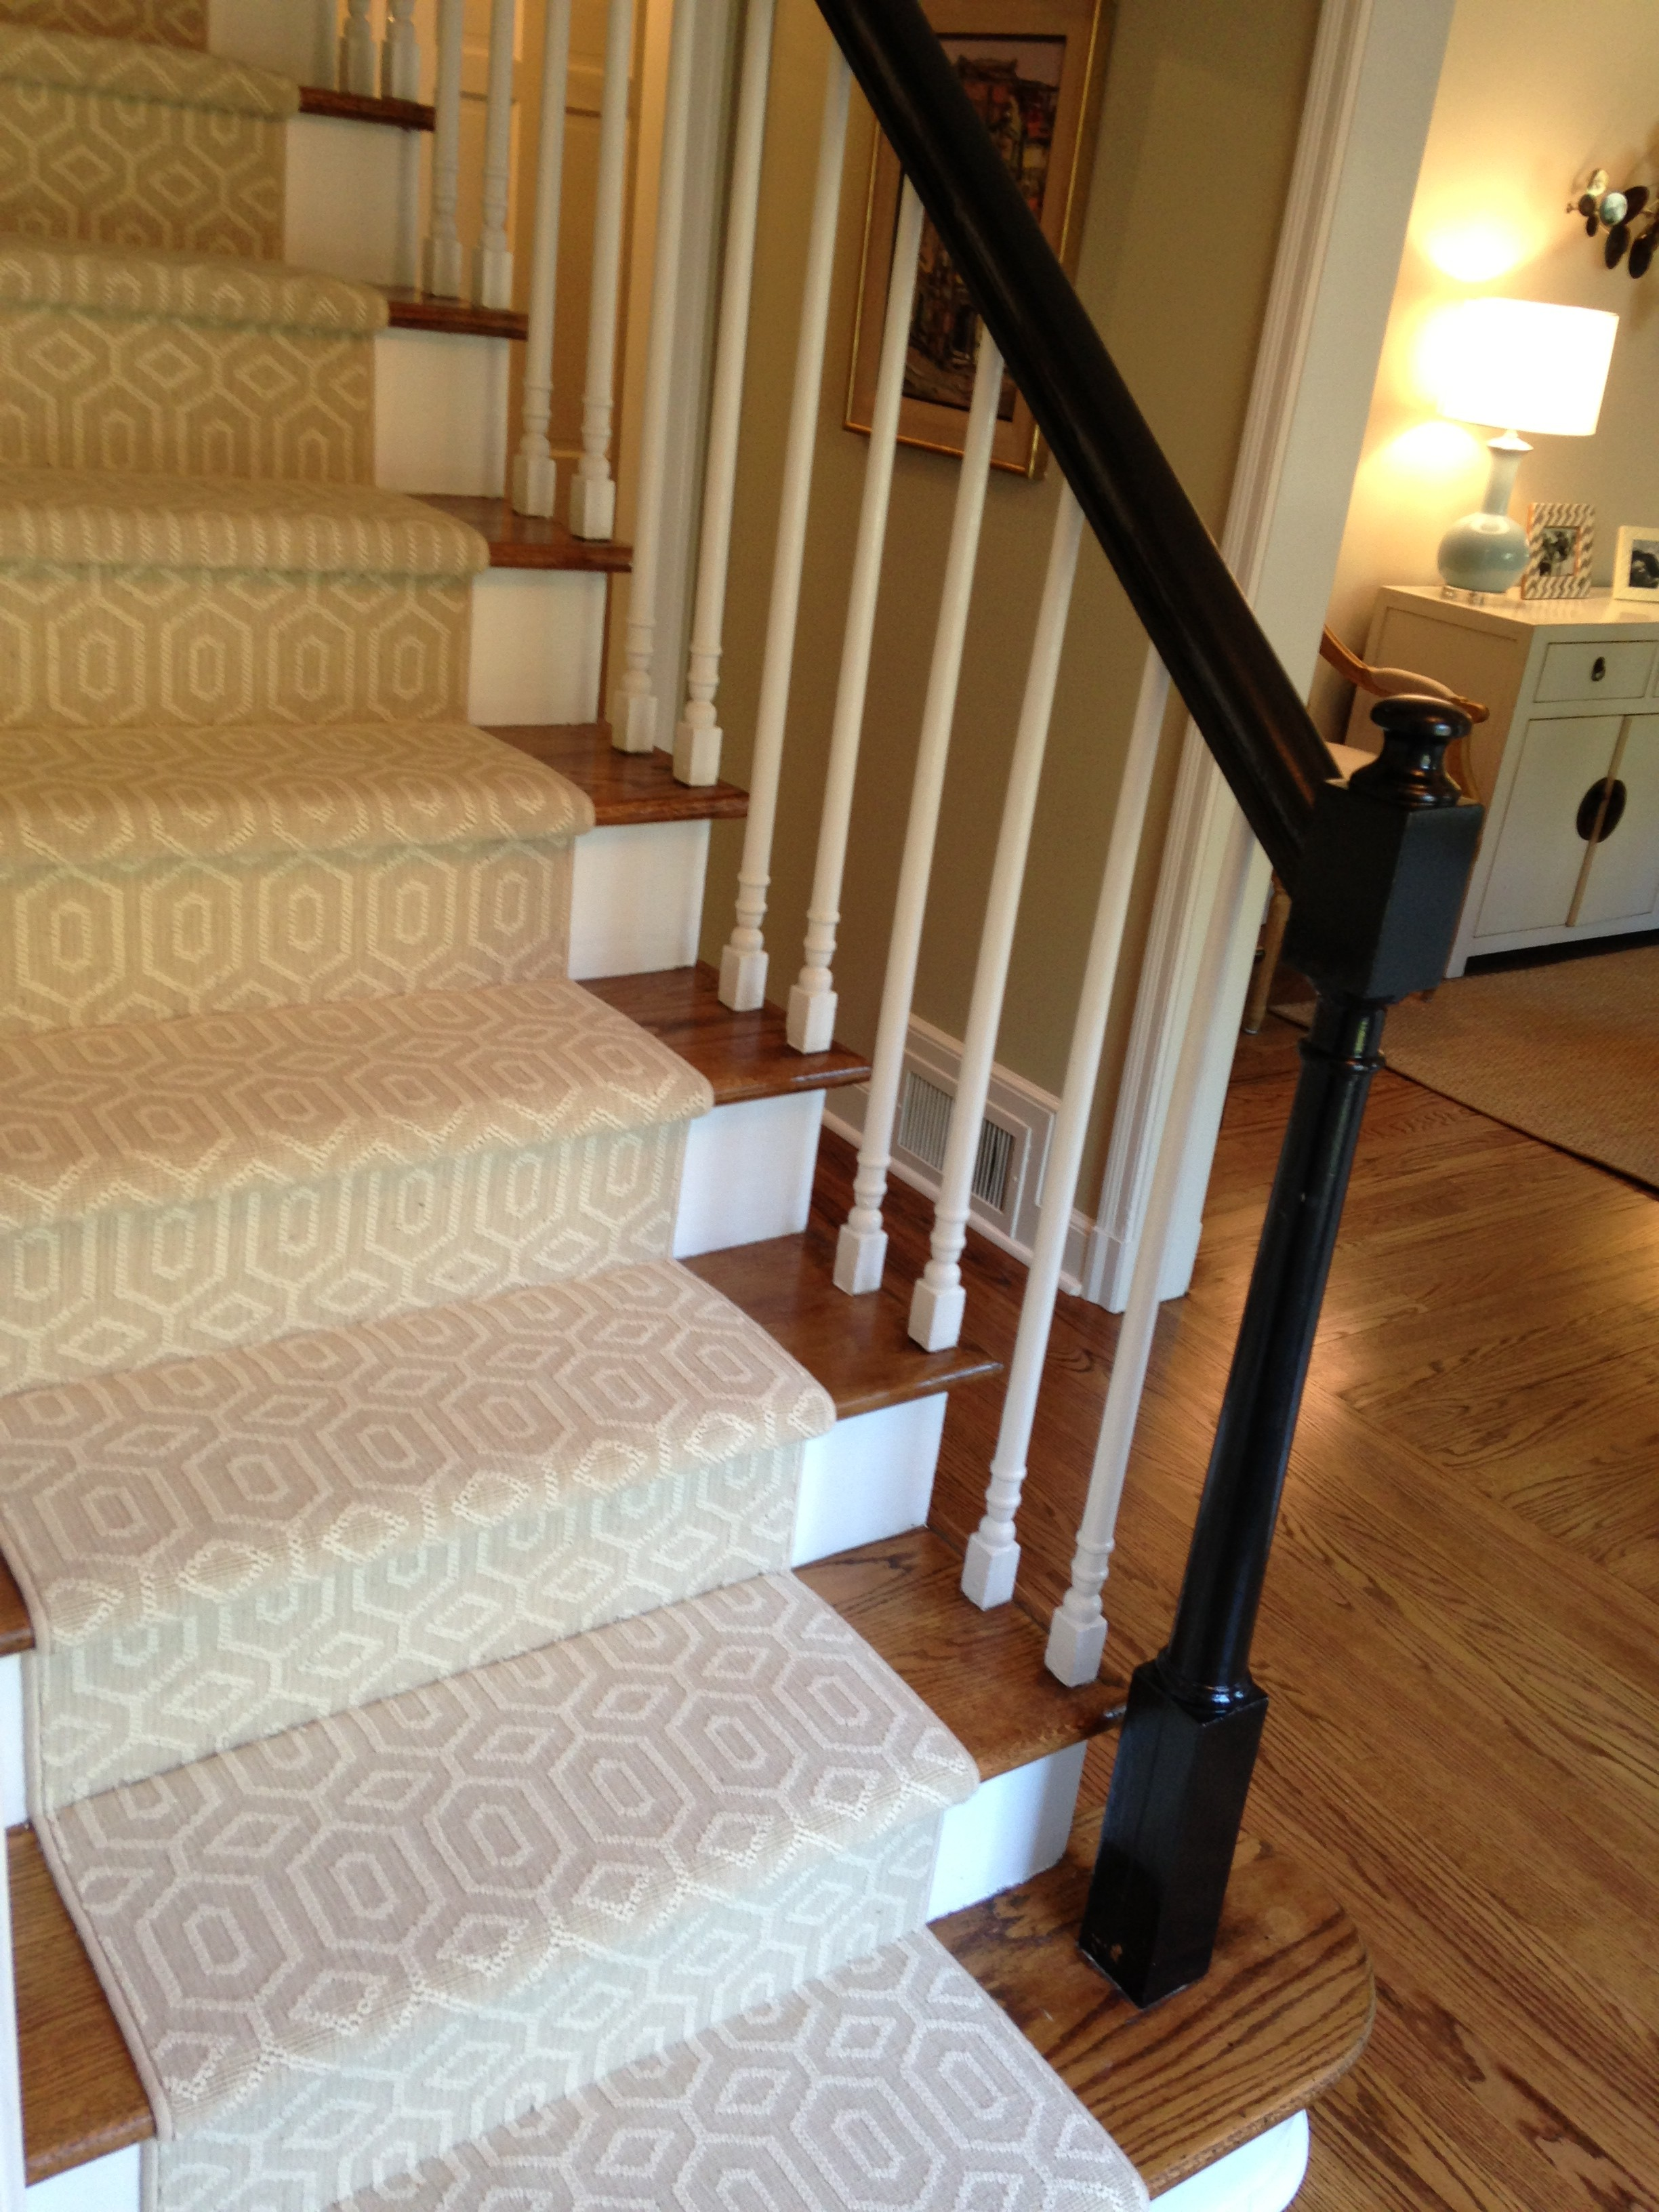 stair carpet runner choosing a stair runner: some inspiration and lessons learned qnhqhfd